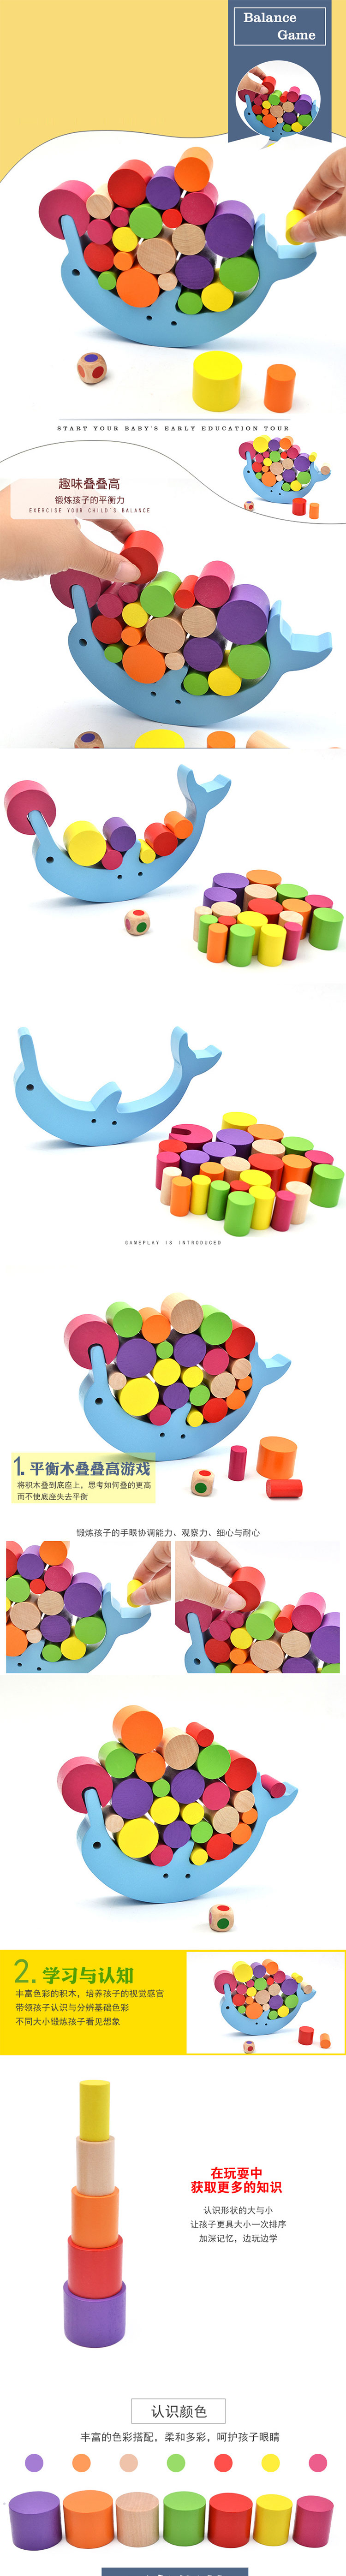 Baby Educational Montessori Colored Cylindrical Puzzle Development Wooden Dolphin Balance Stacking Blocks Toy